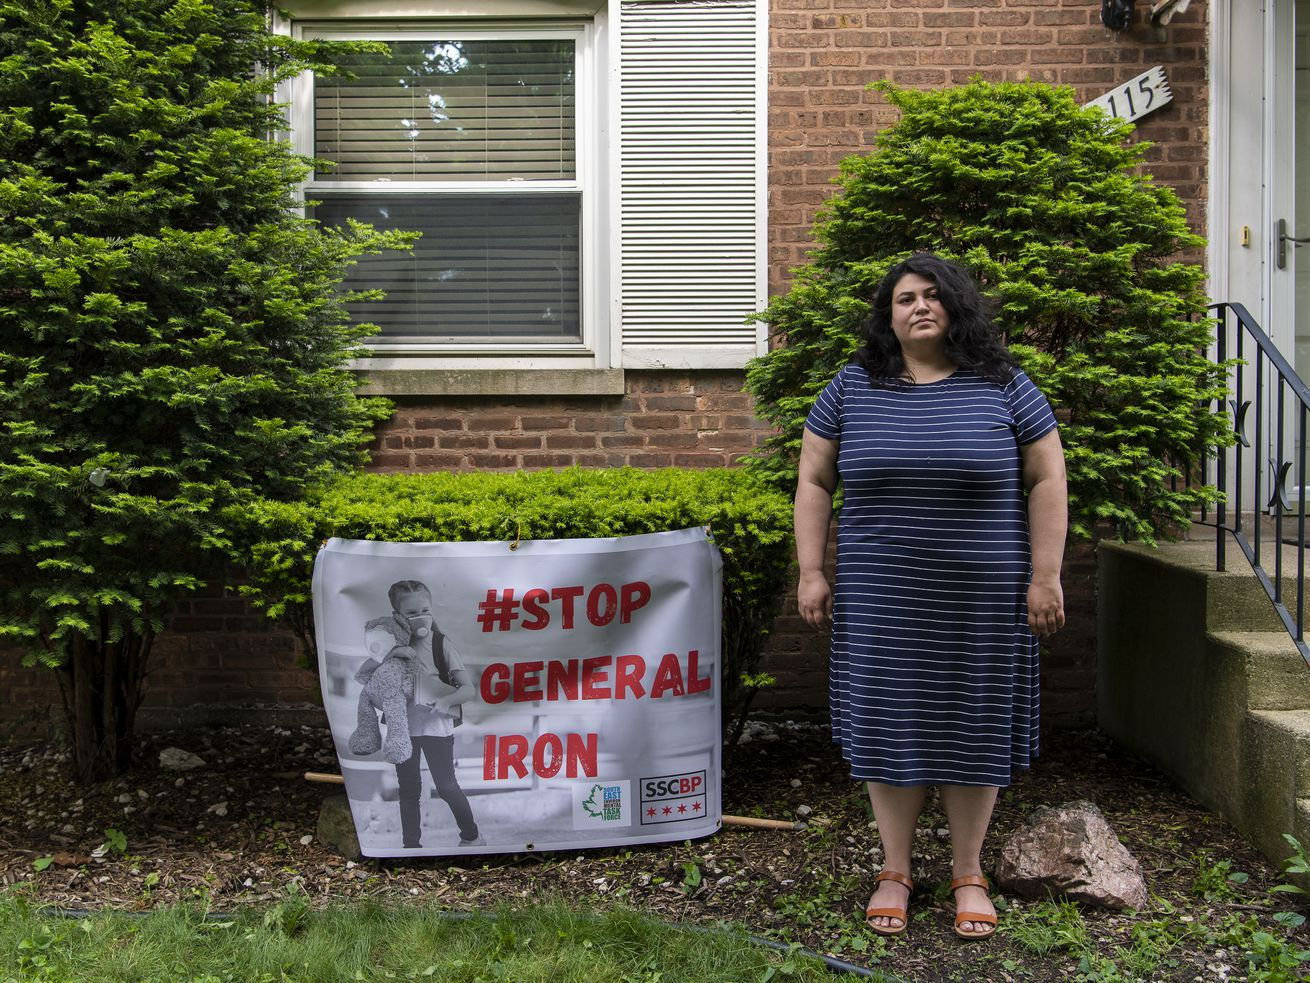 Ald. Garza to oppose General Iron's new metal shredder on Southeast Side, activists say